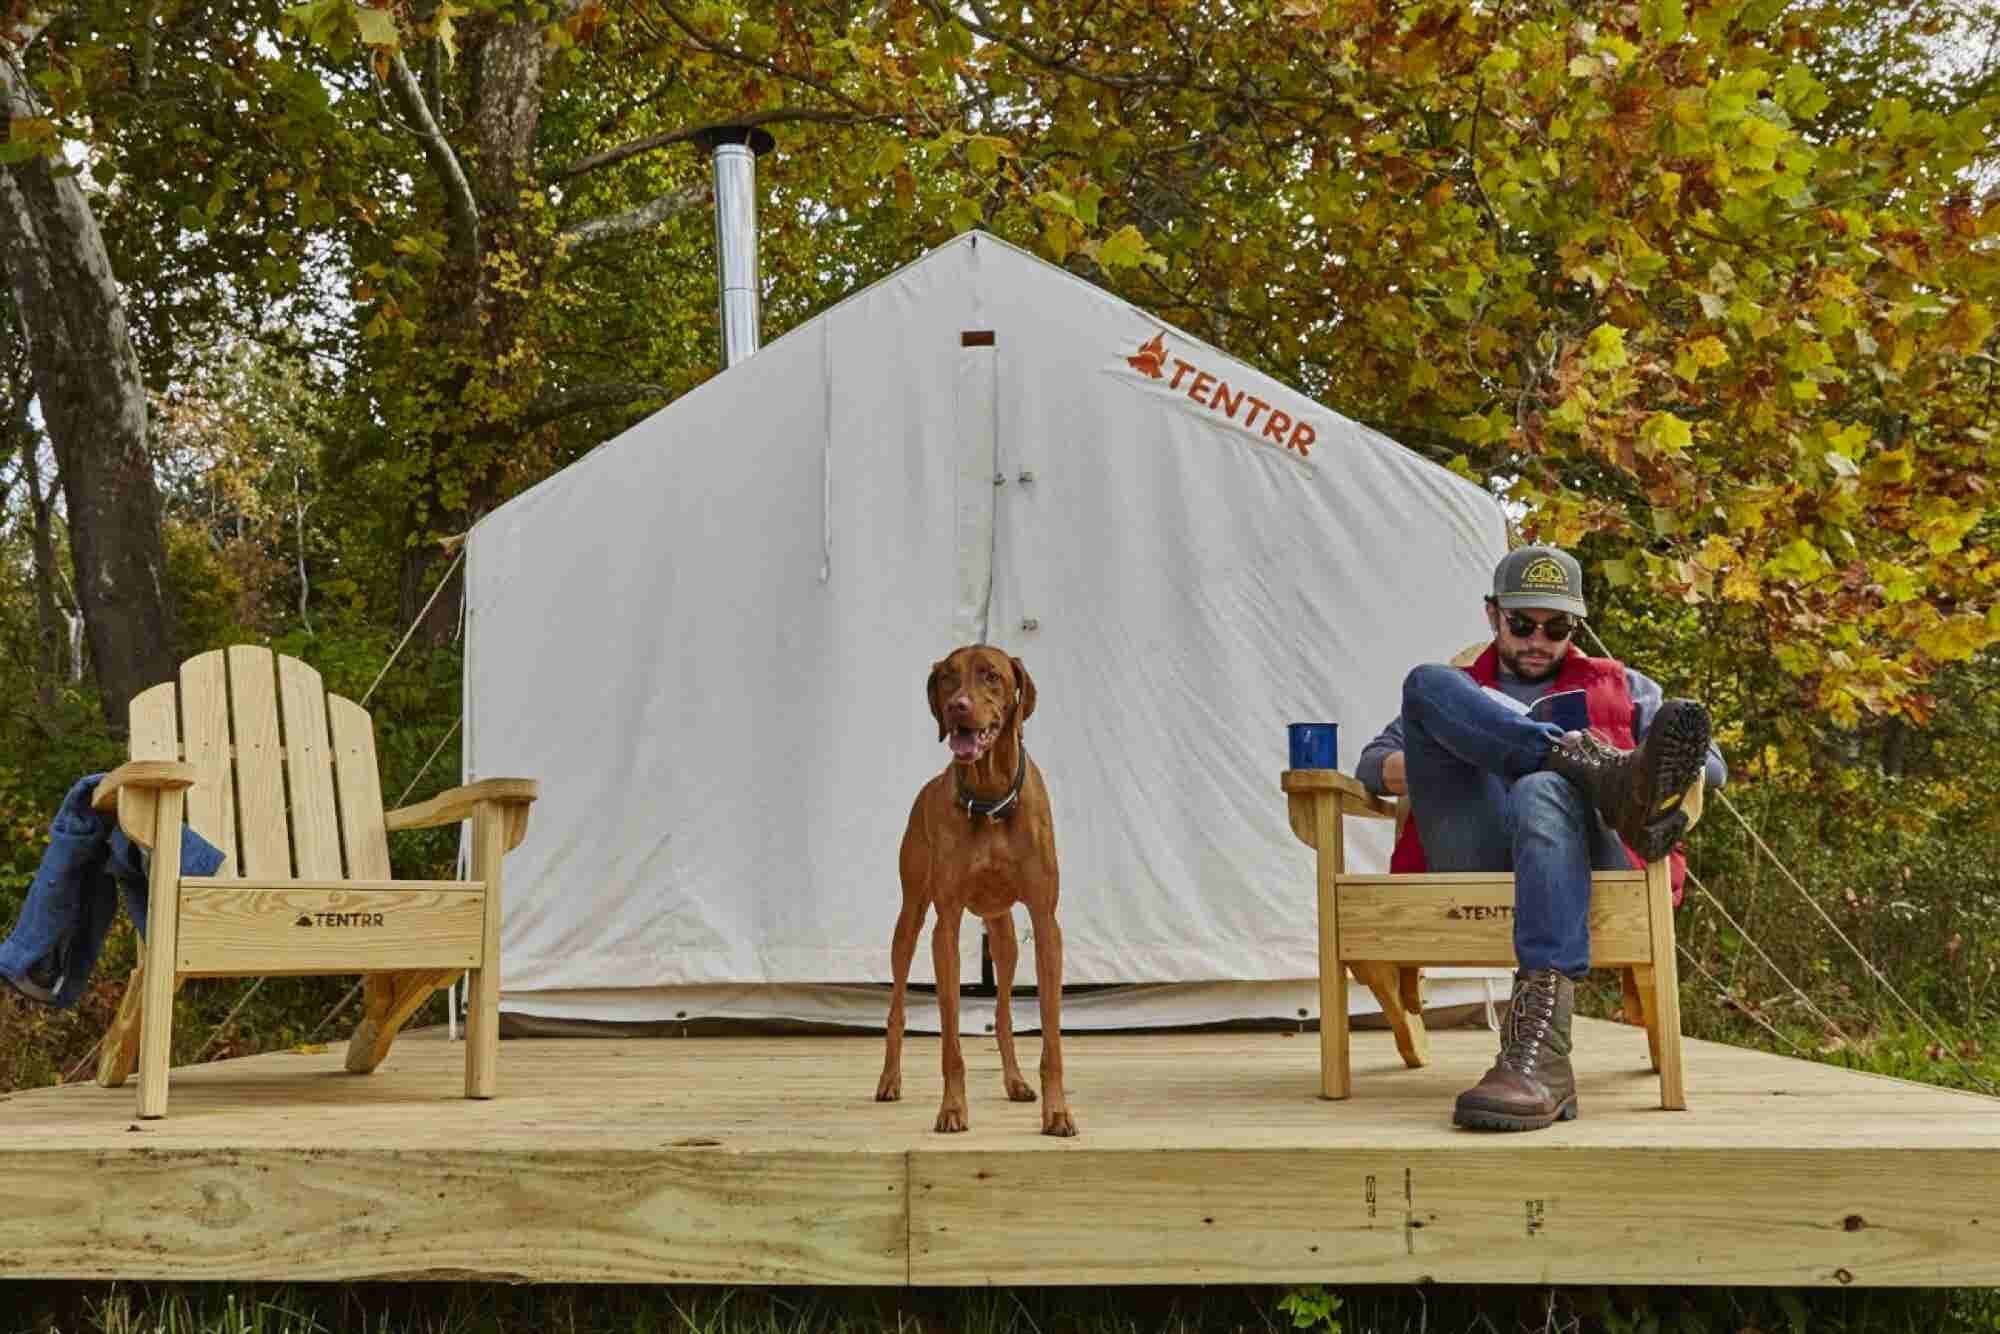 Check Out the Airbnb Camping Experience for Owners and Their Dogs